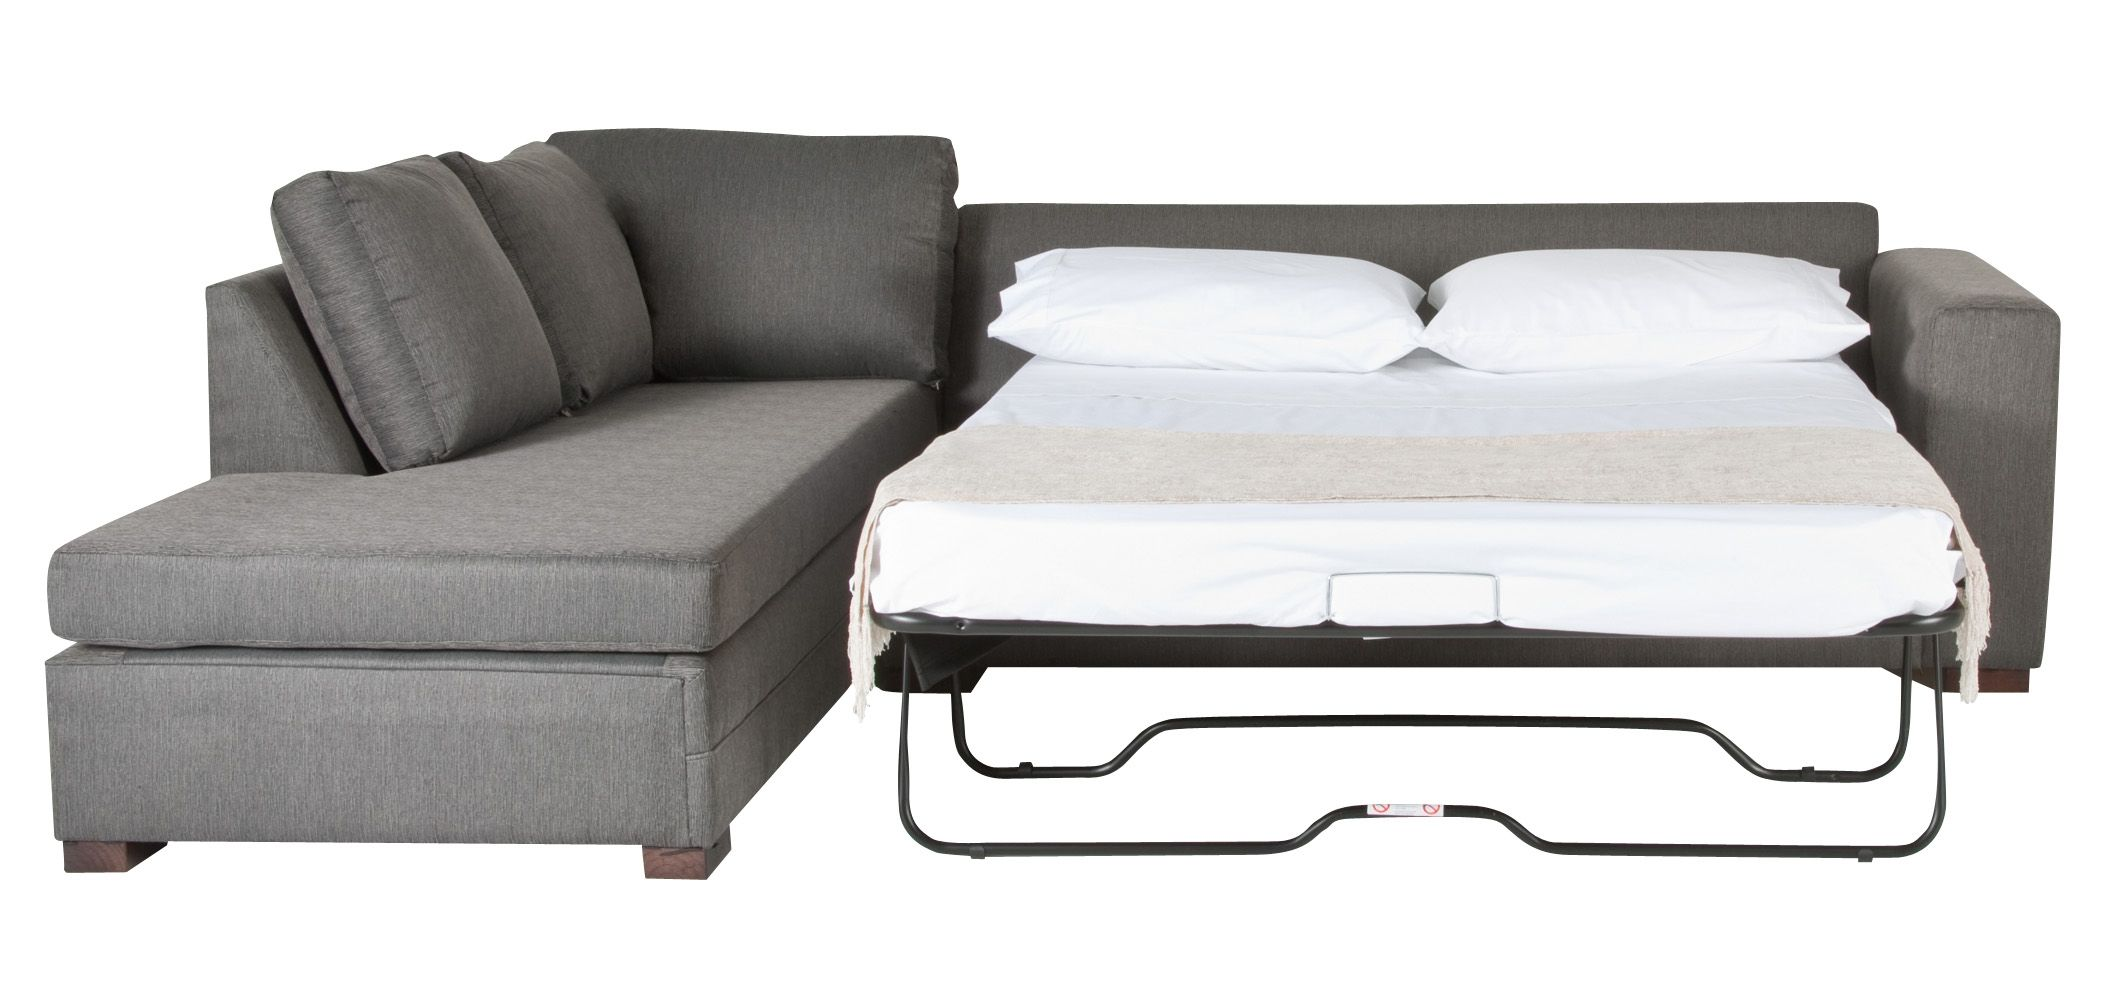 Leather Sectional Sofa With Pull Out Bed Muebles Para Departamentos Pequenos Muebles Unicos Sofacama Moderno